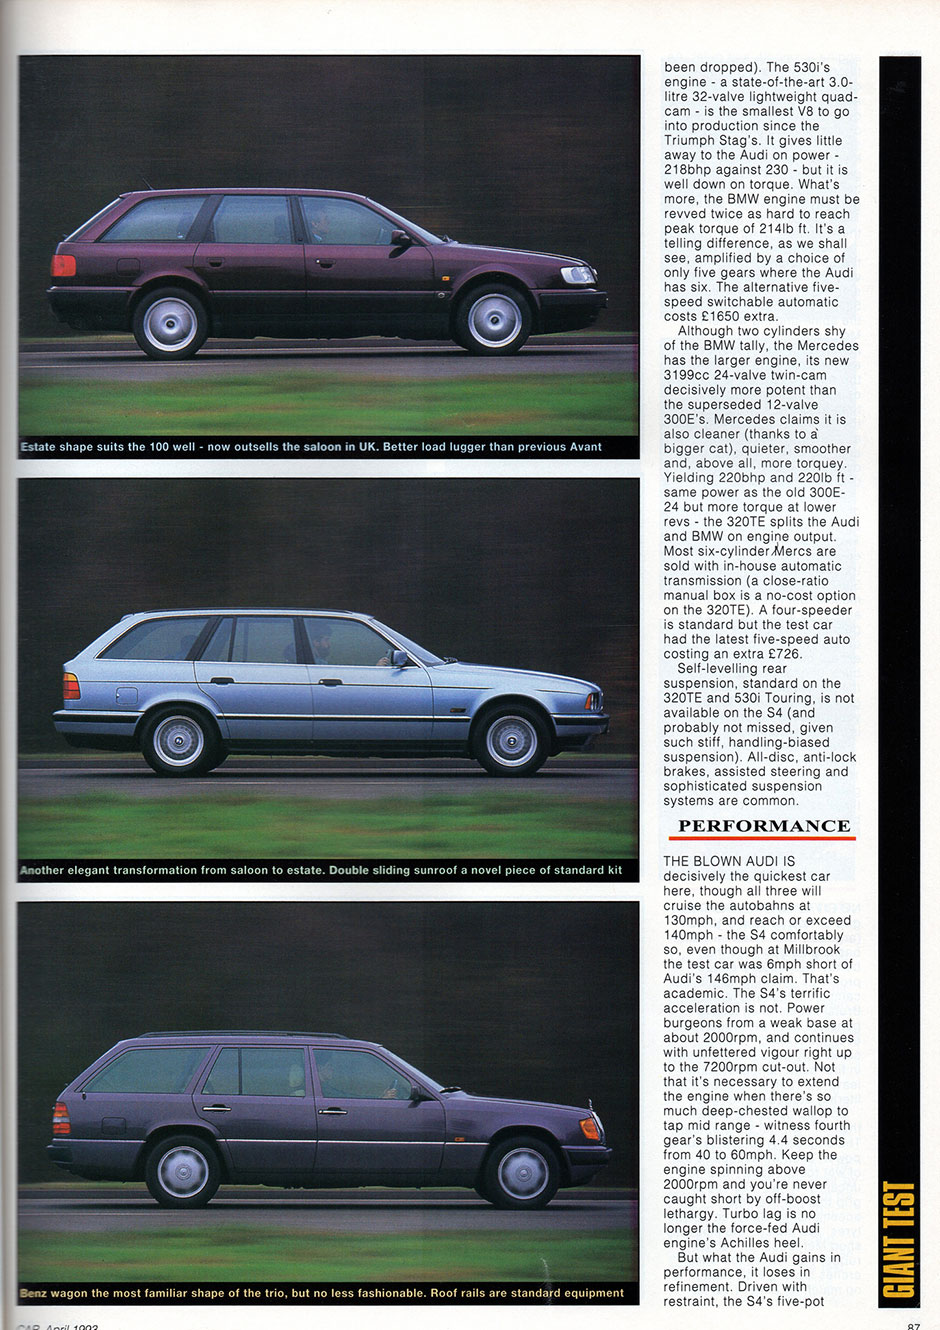 Audi S4 Estate, BMW 530i Touring, Mercedes 320 TE